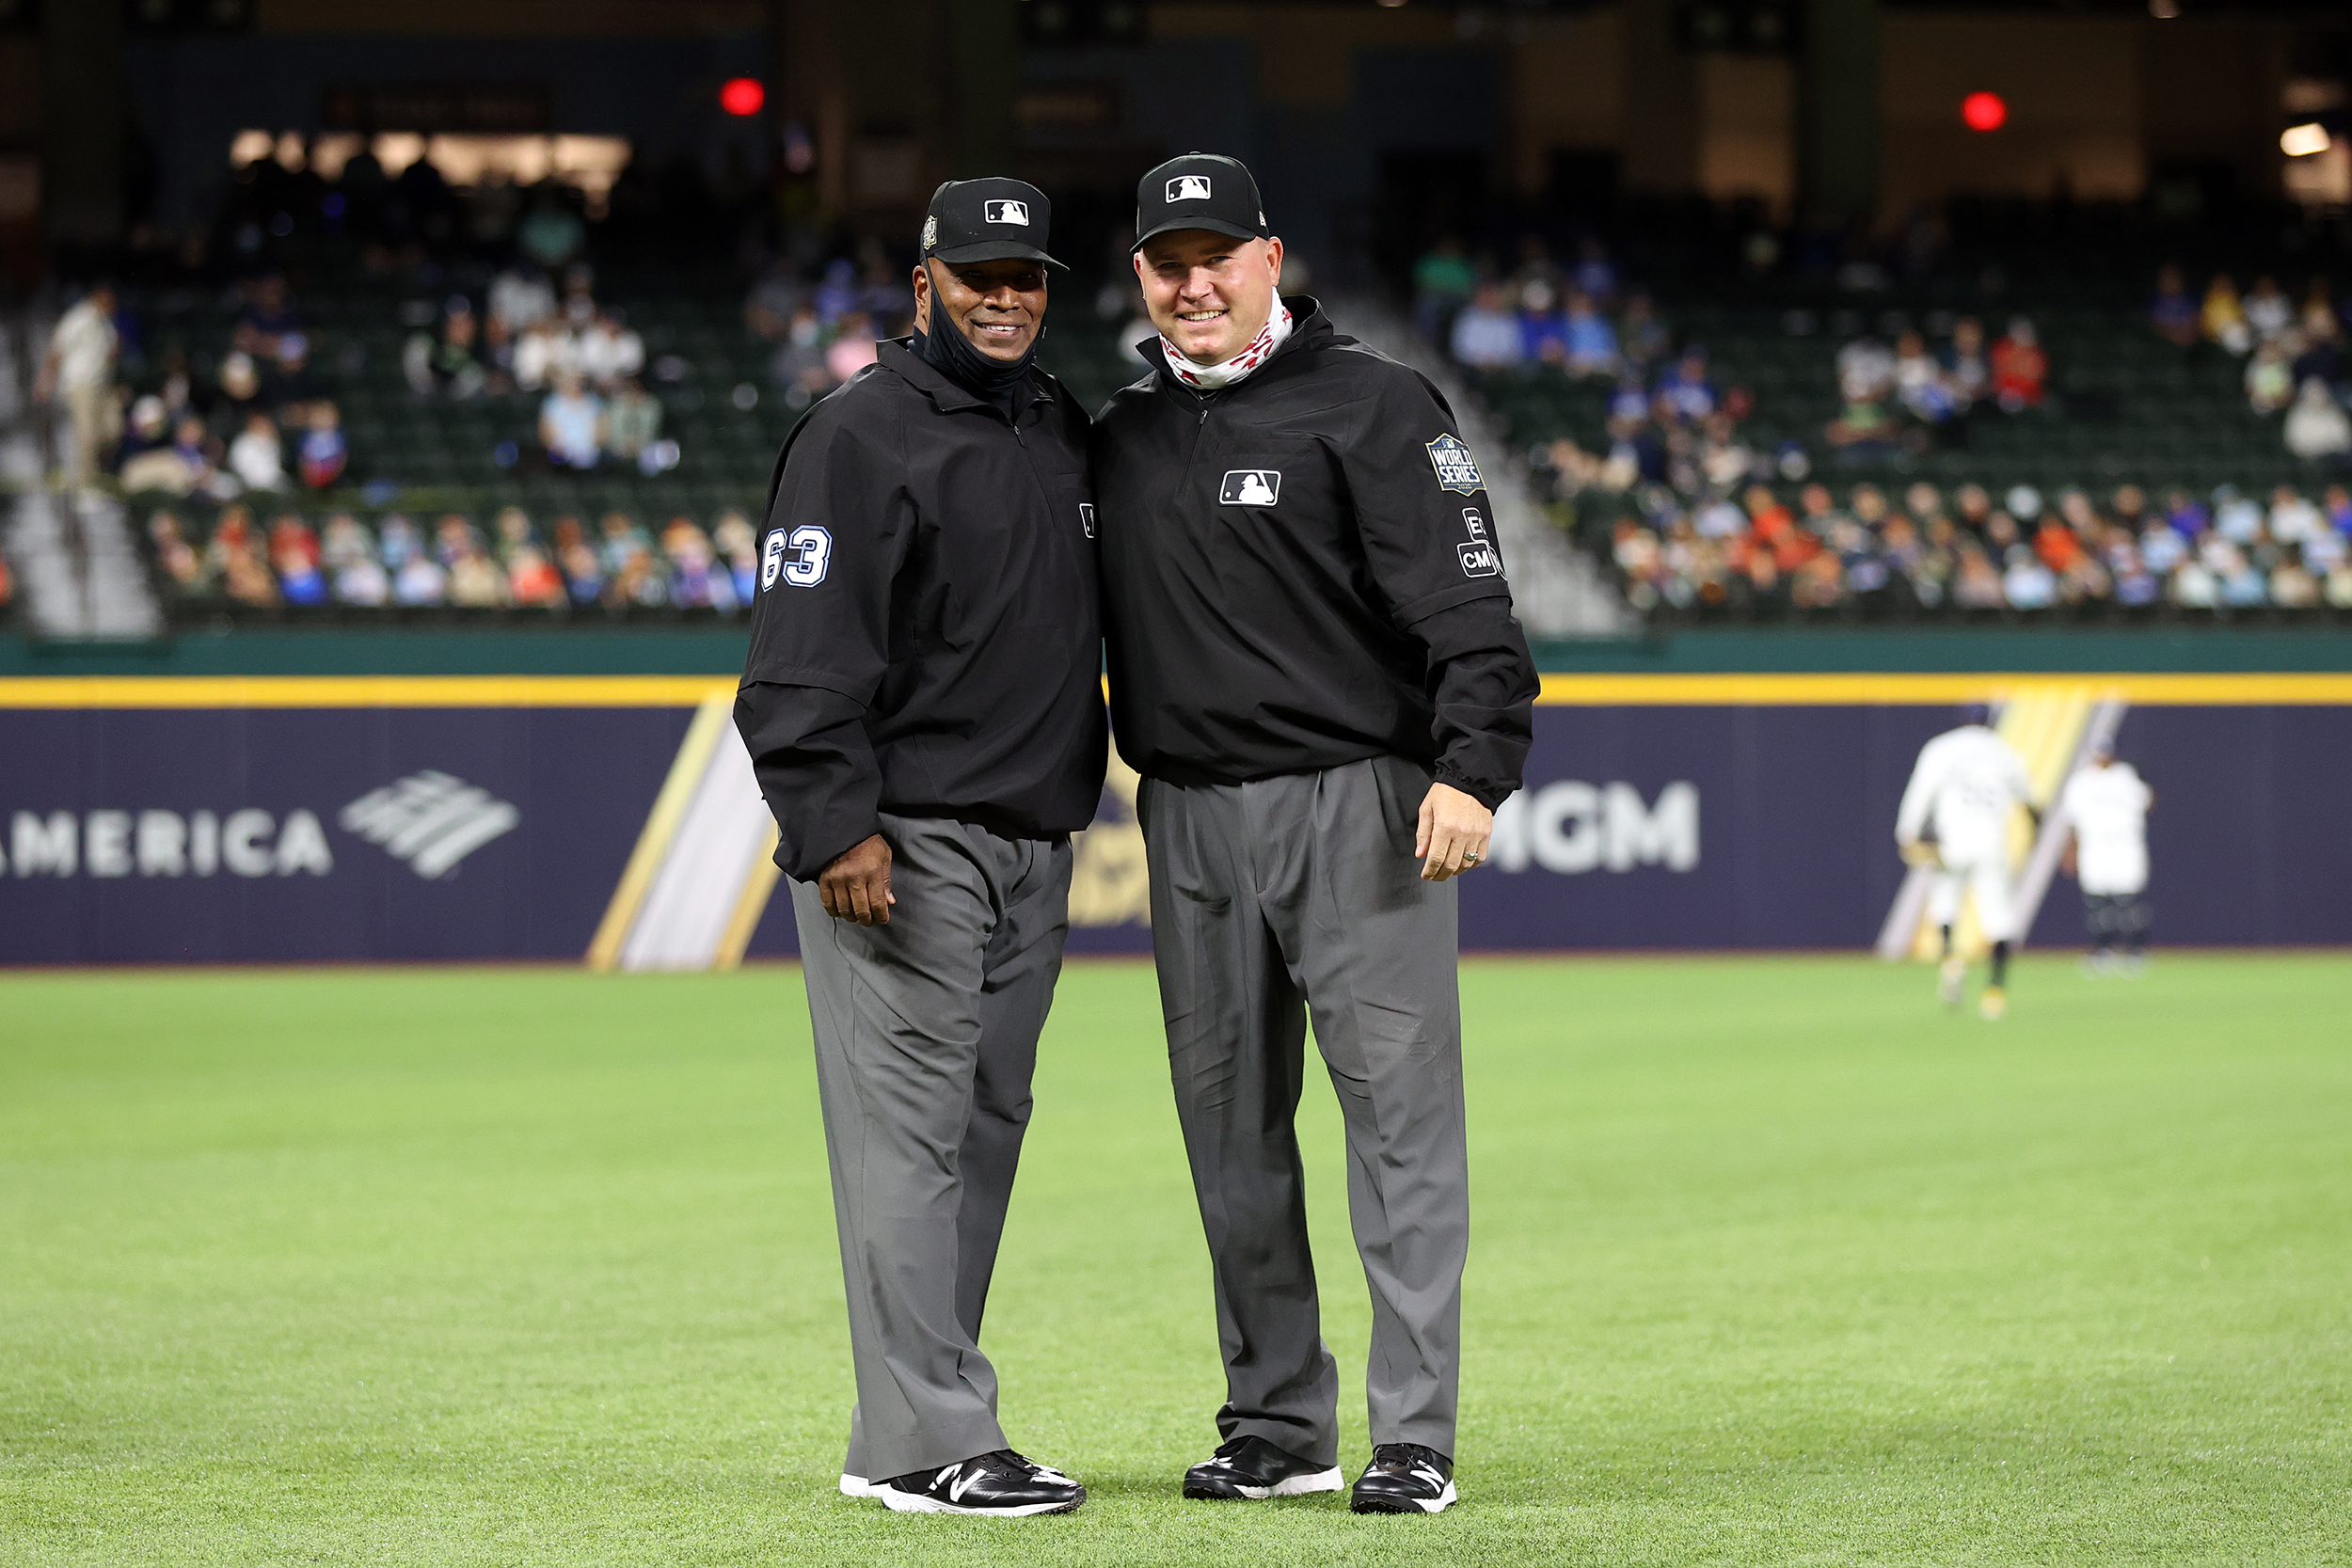 Special Zoom Chat With MLB Umpires Laz Diaz and Mark Carlson - Who Have Both Served Our Country On & Off The Field